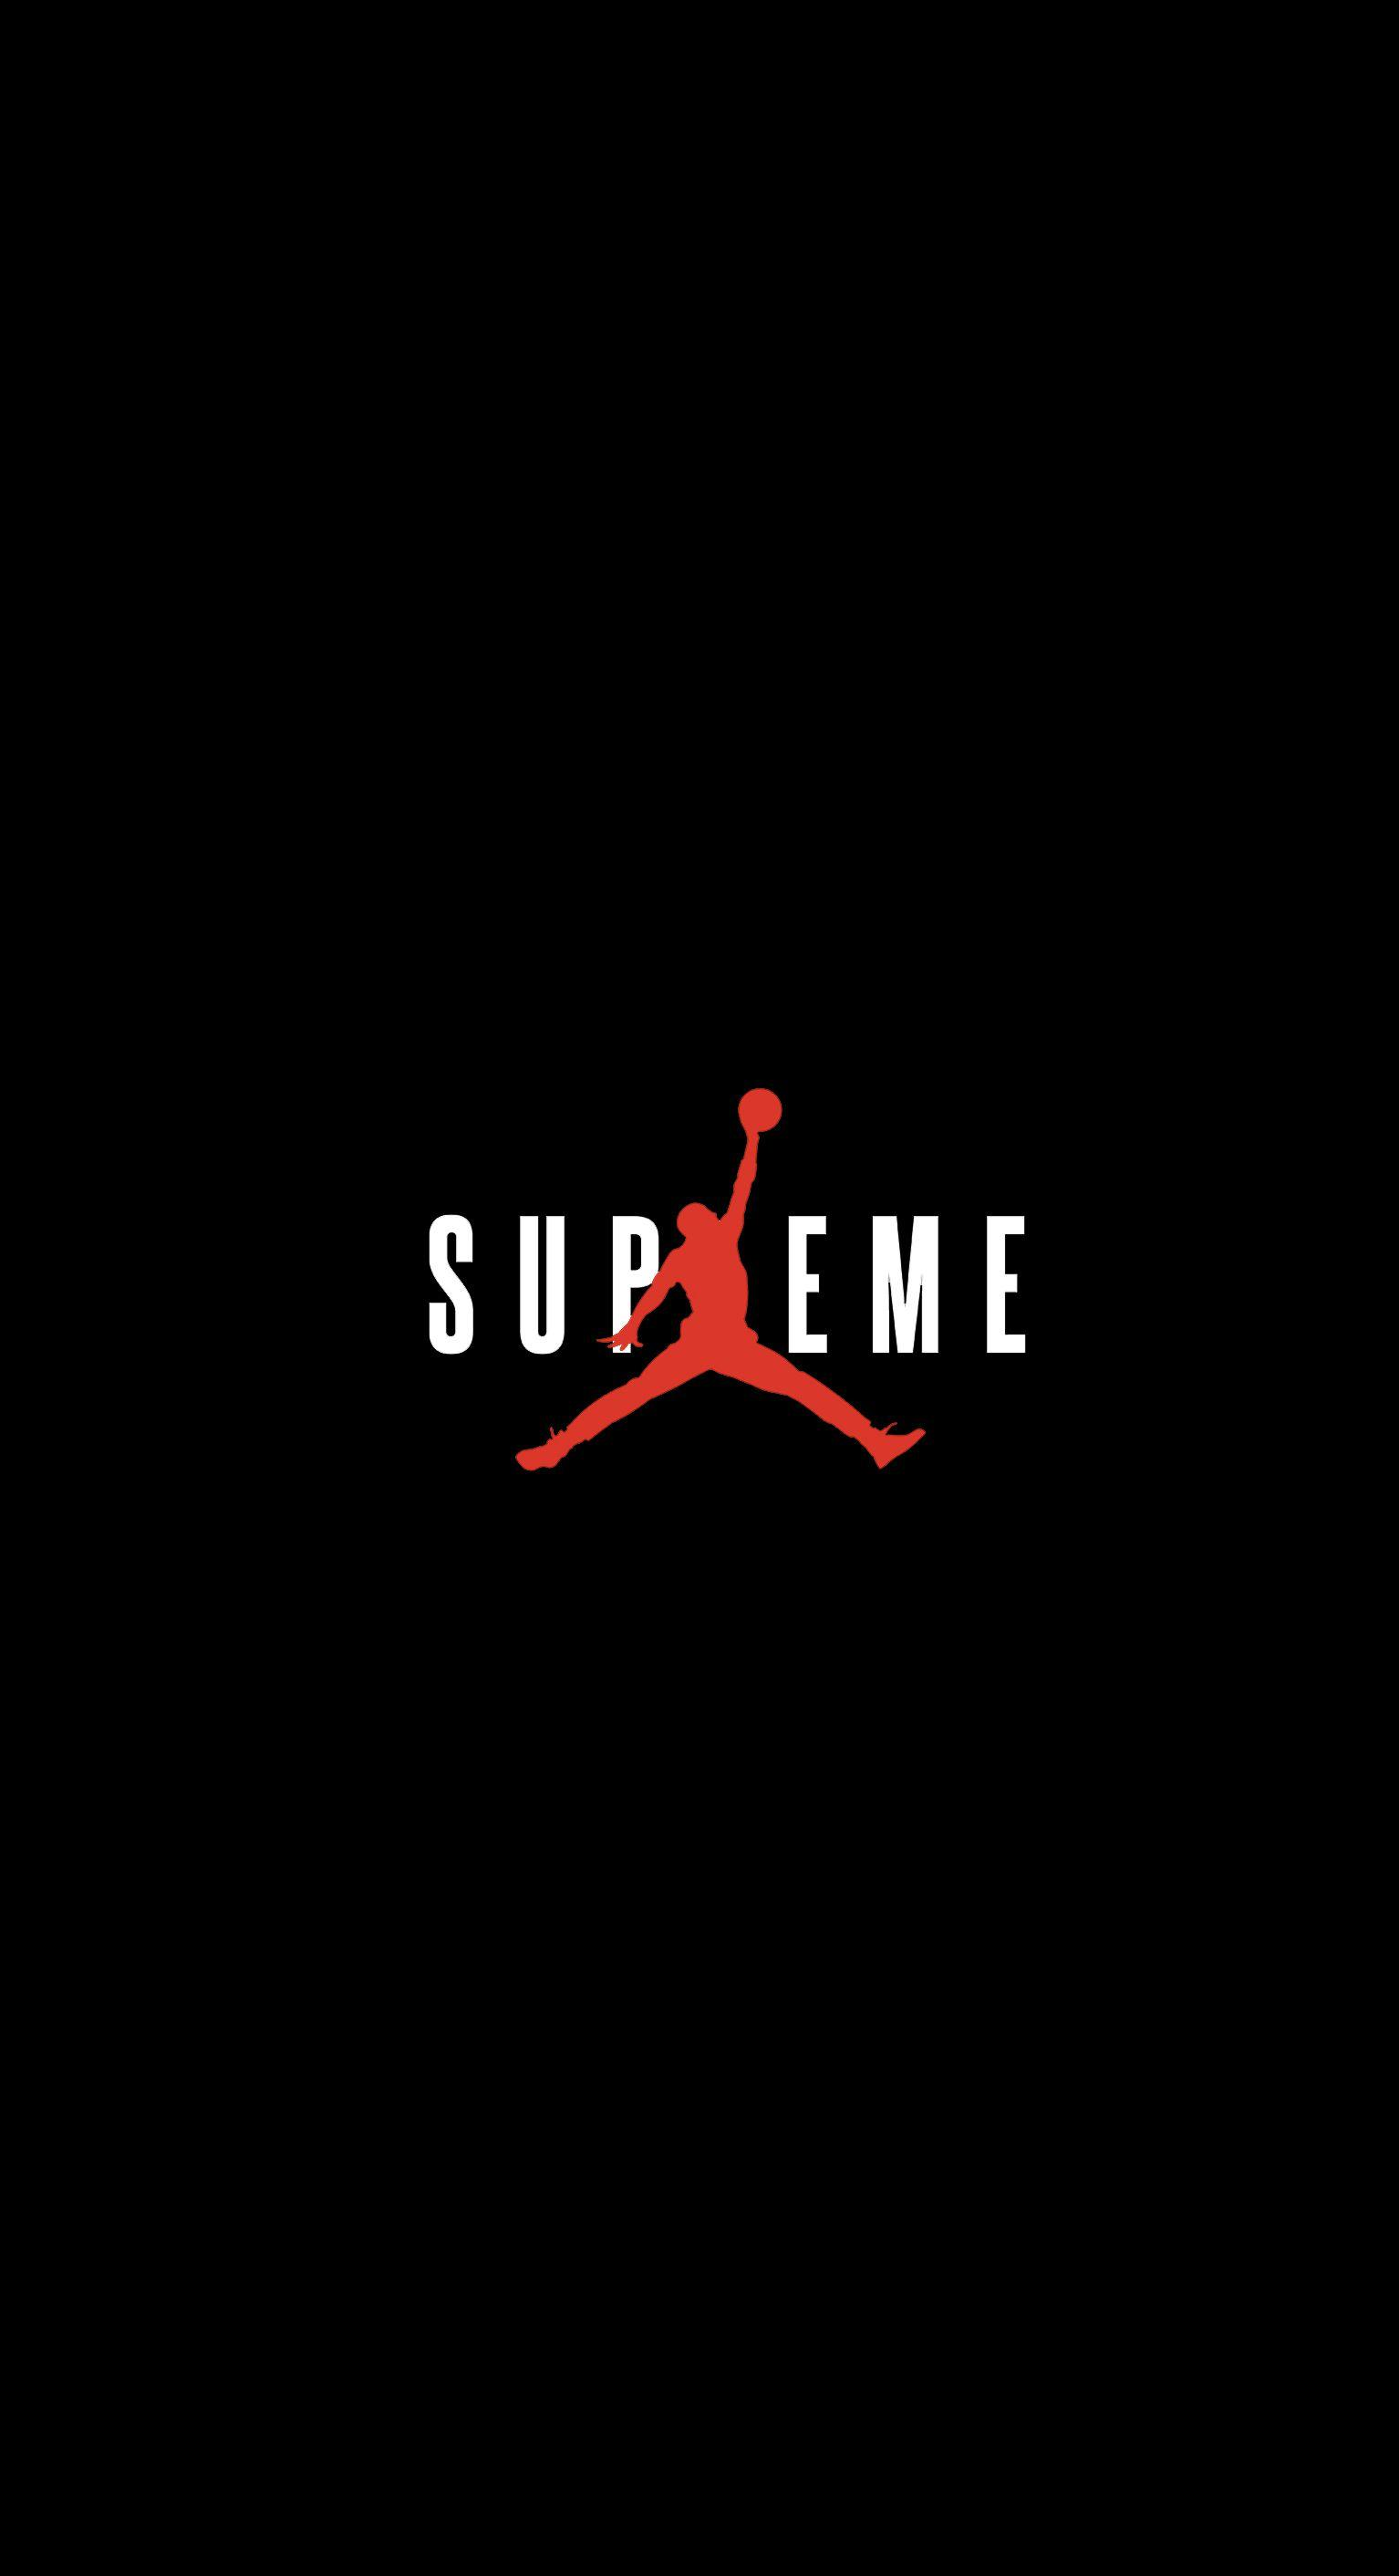 Wallpapers Supreme Wallpaper Cave